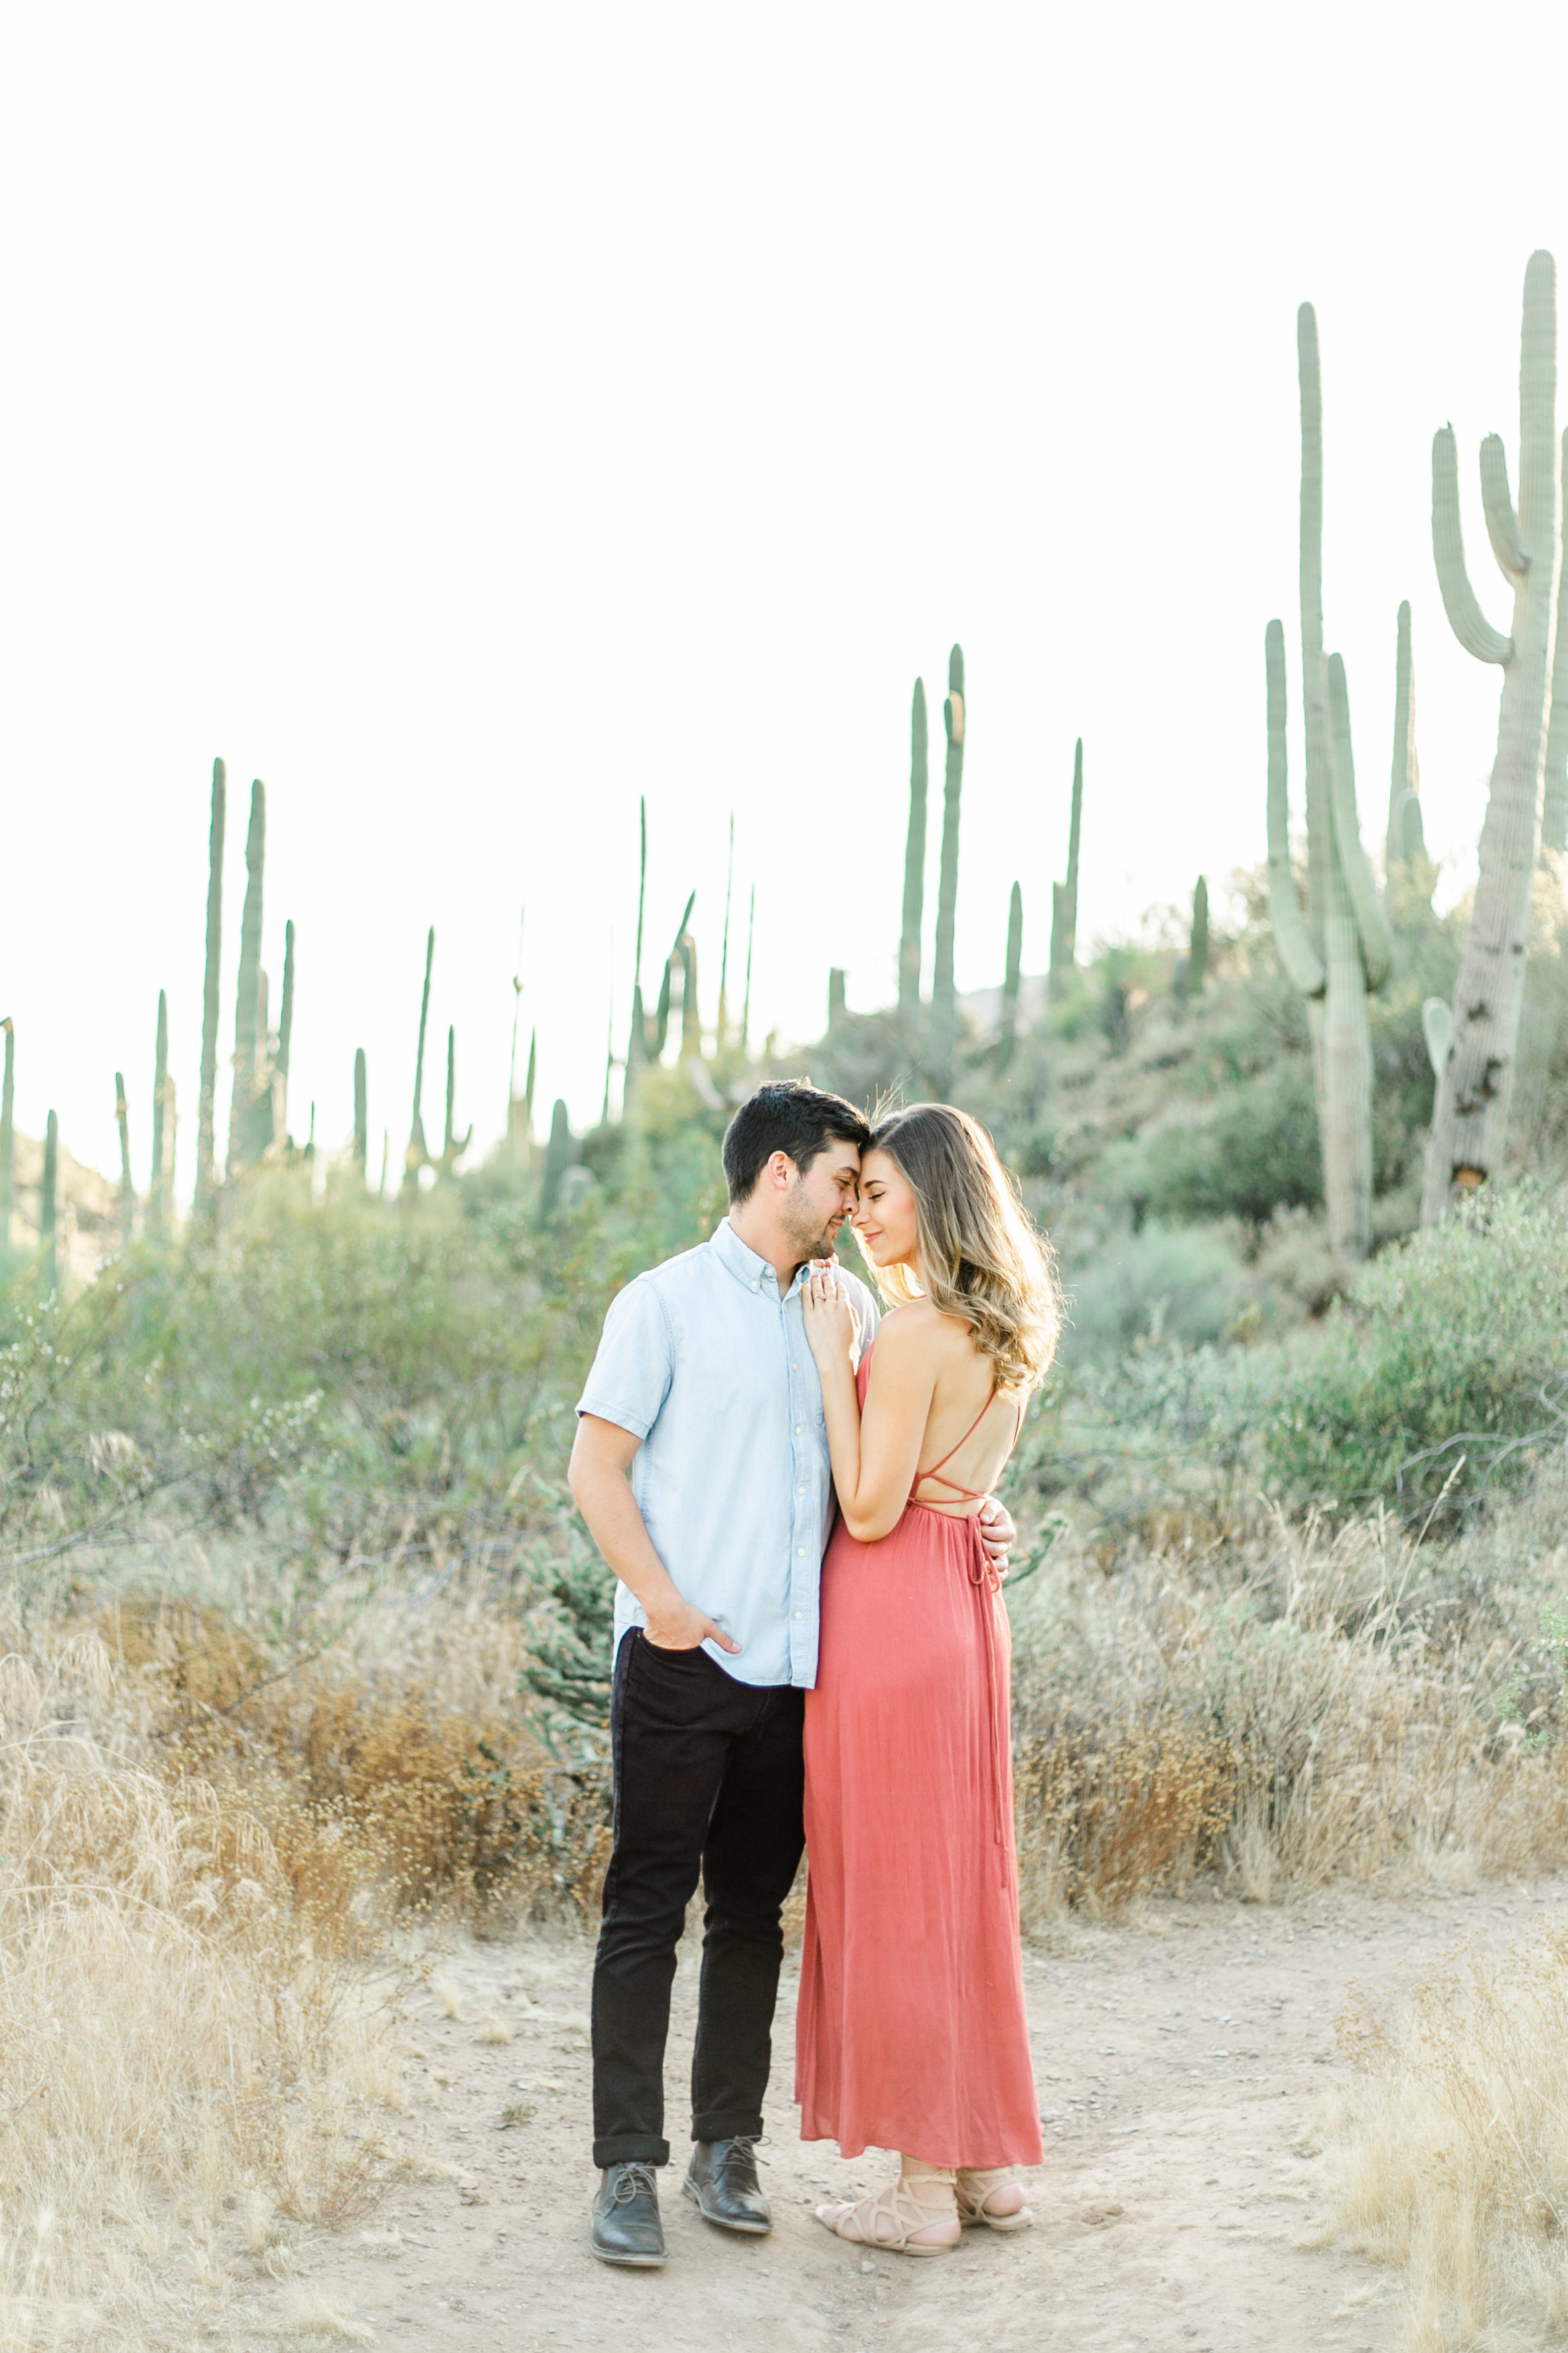 Karlie Colleen Photography - Arizona Desert Engagement - Brynne & Josh -89